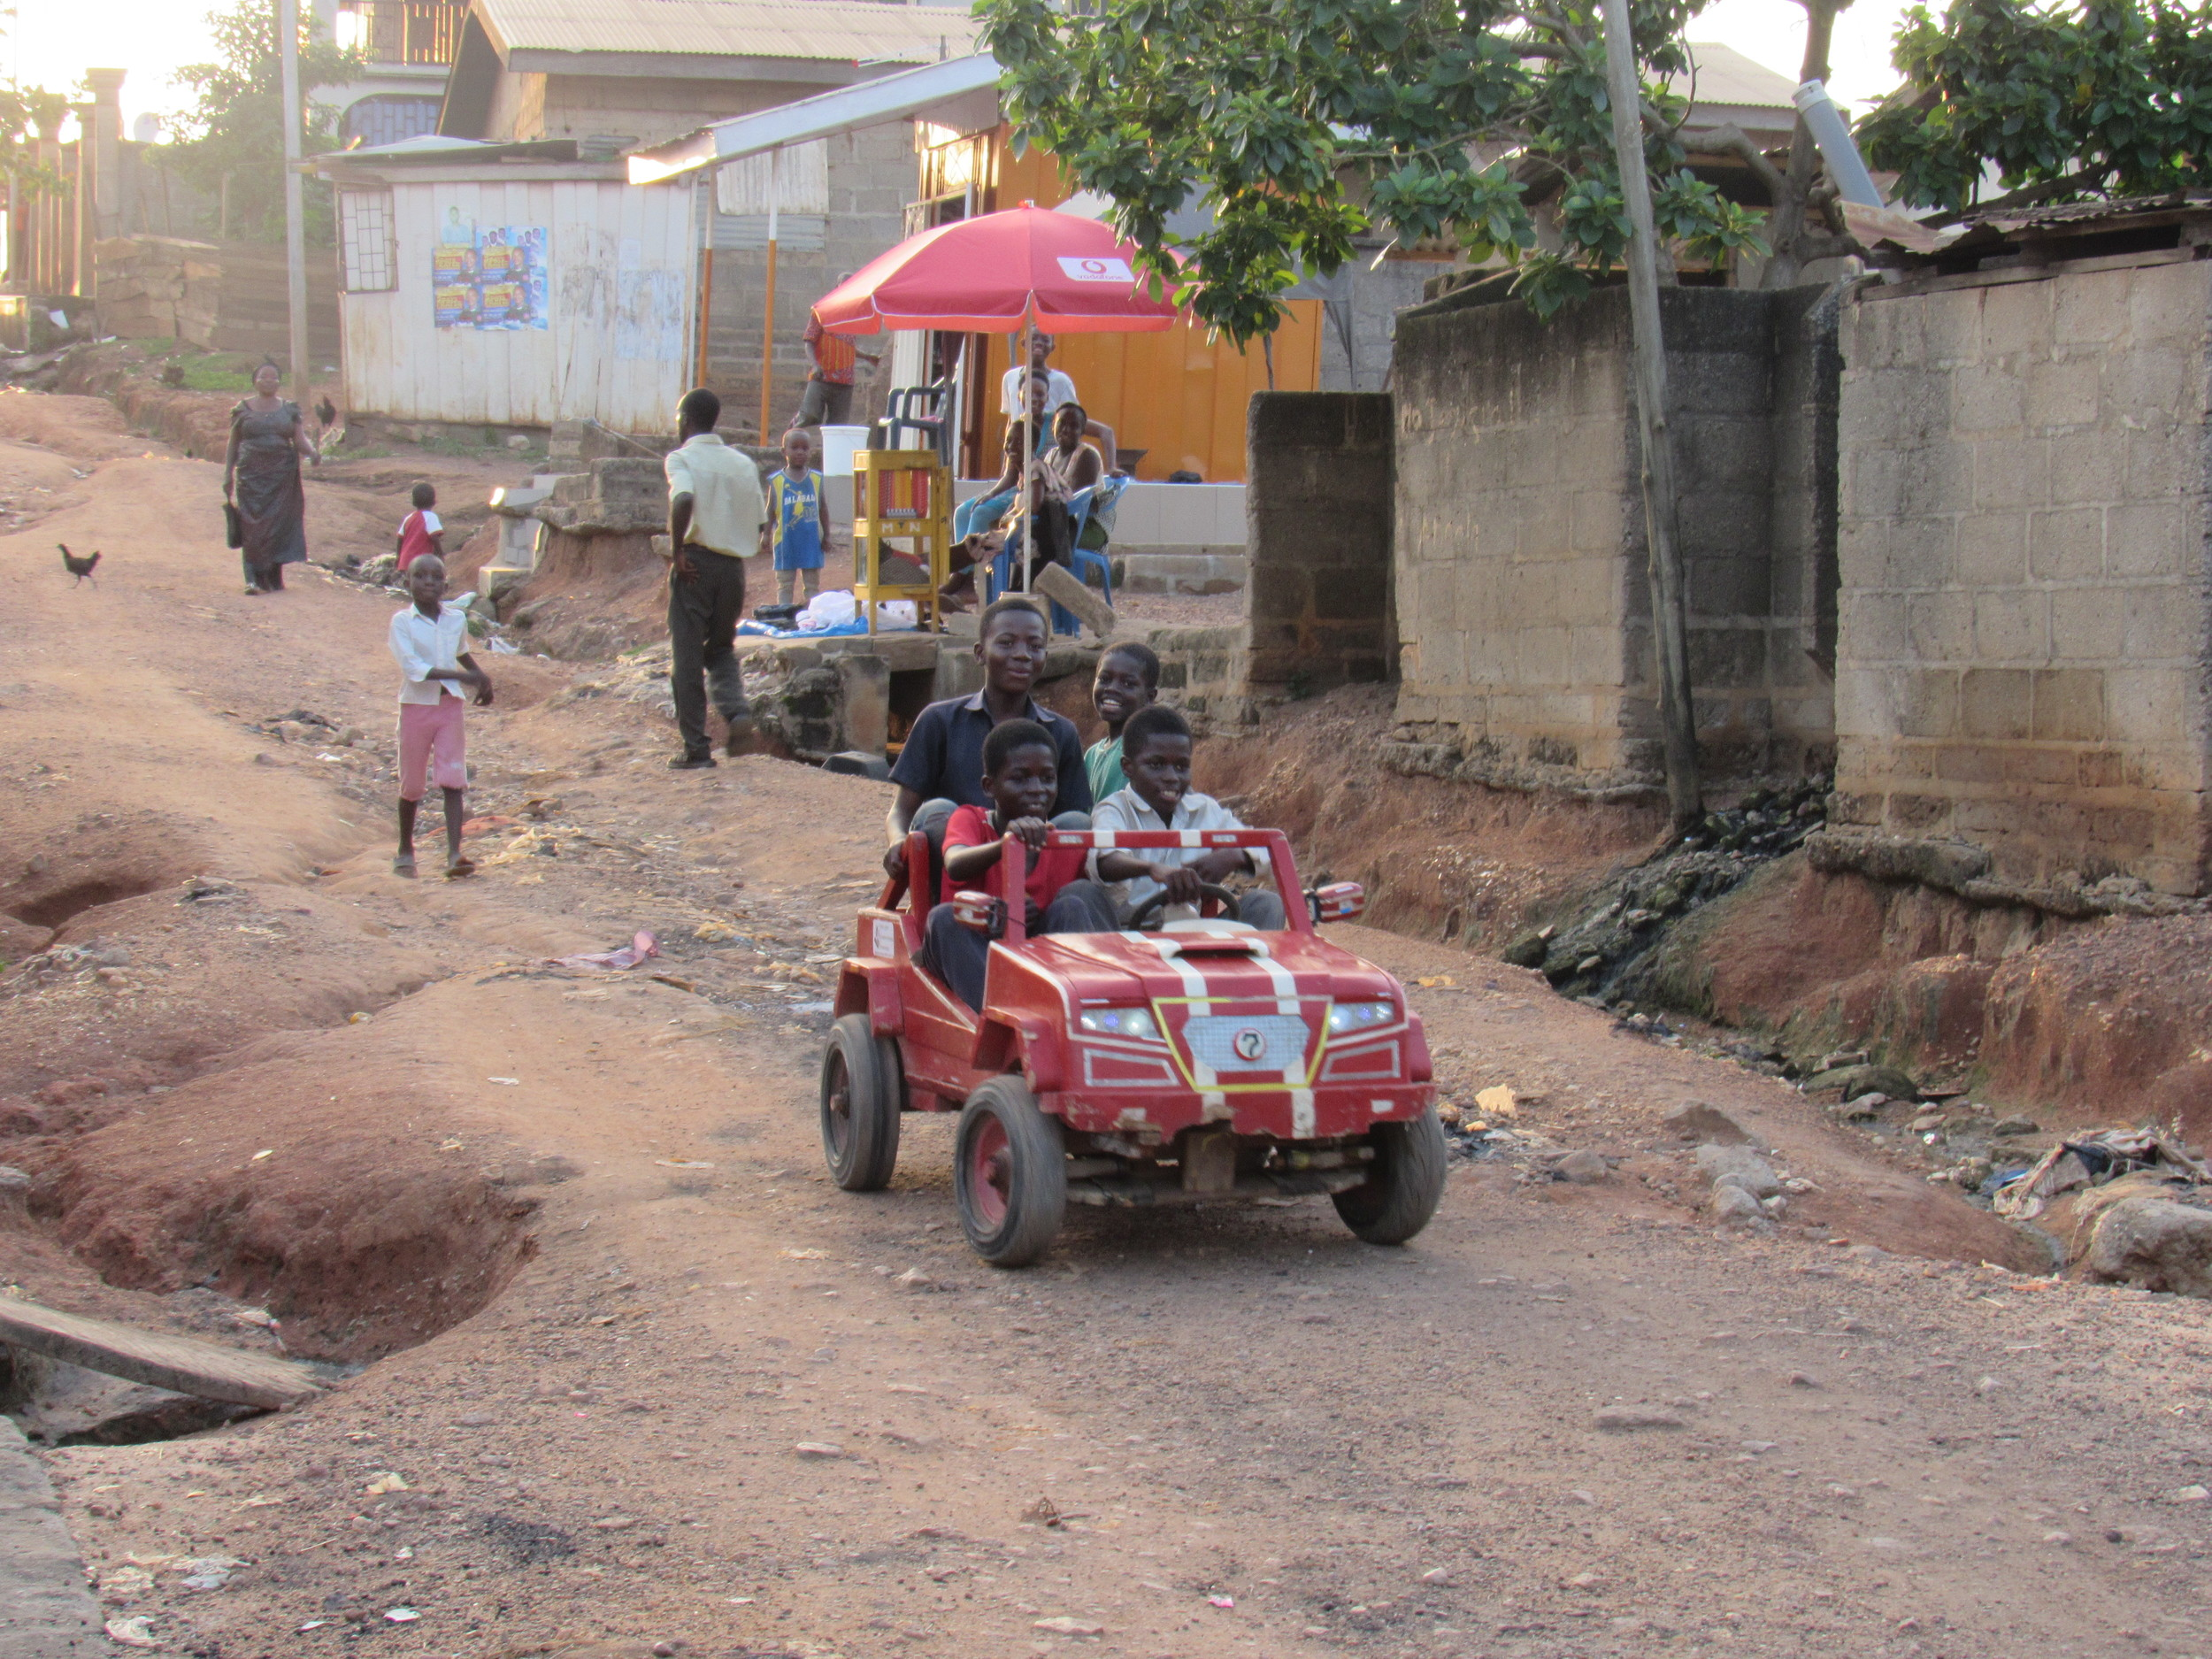 Some kids built a little car and were daredevils riding down a less than stellar road outside our house.